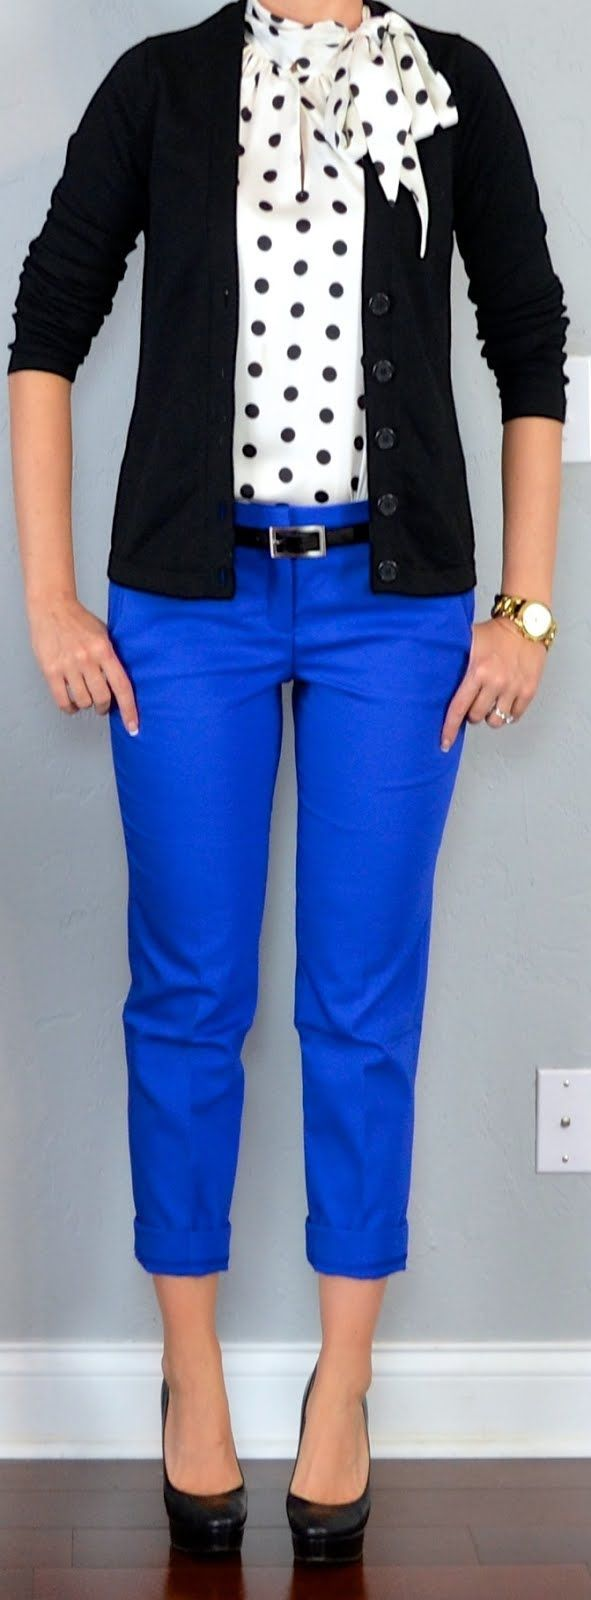 outfit: bow top, cardi, royal blue trousers